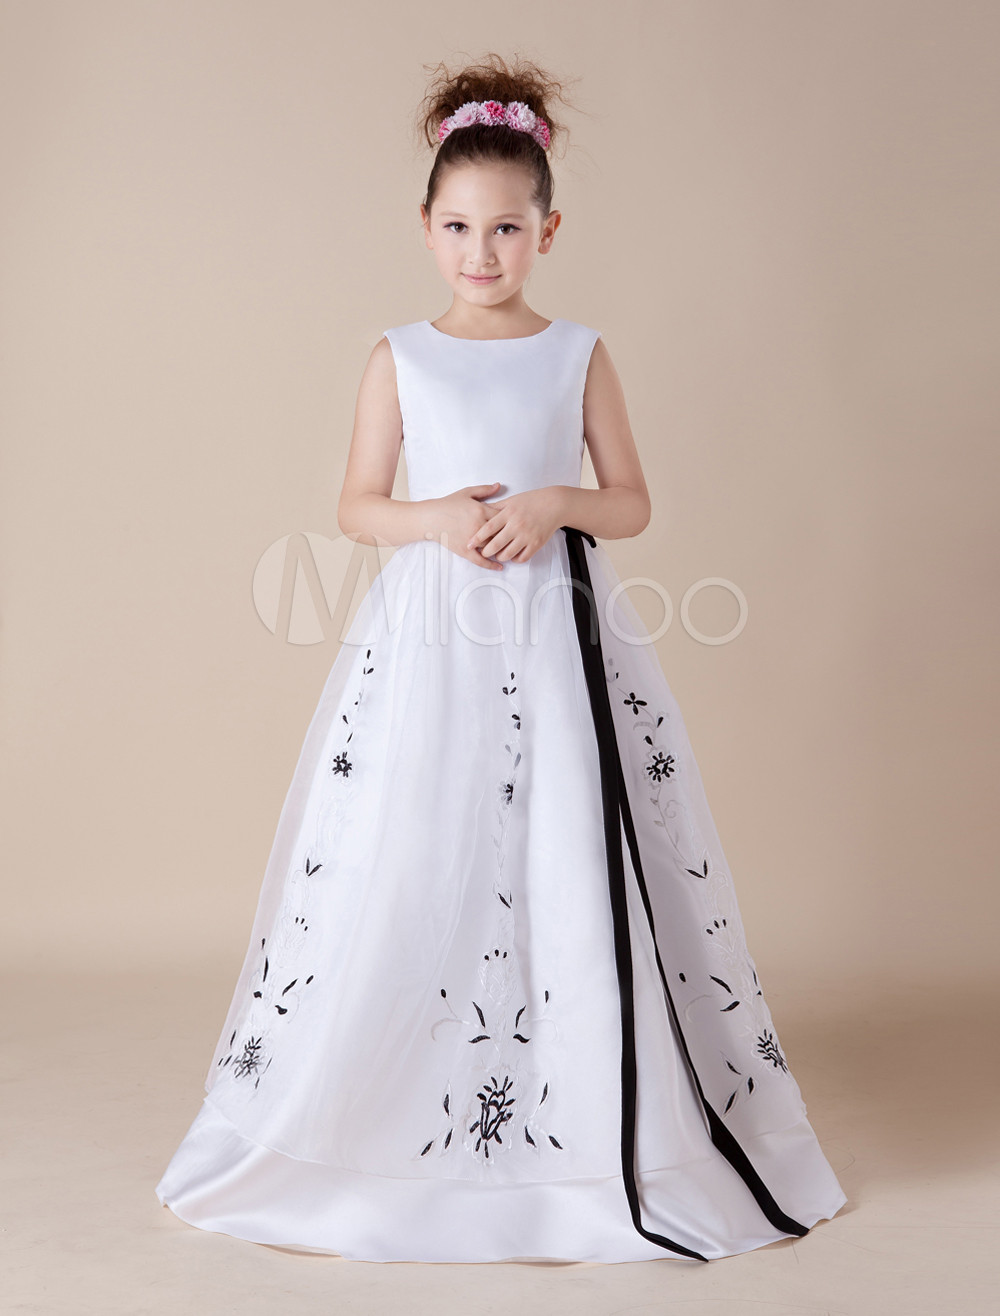 19667afc9c ... Cute White Embroidery Sash Satin Organza Flower Girl Dress-No.8. 12.  32%OFF. Color White